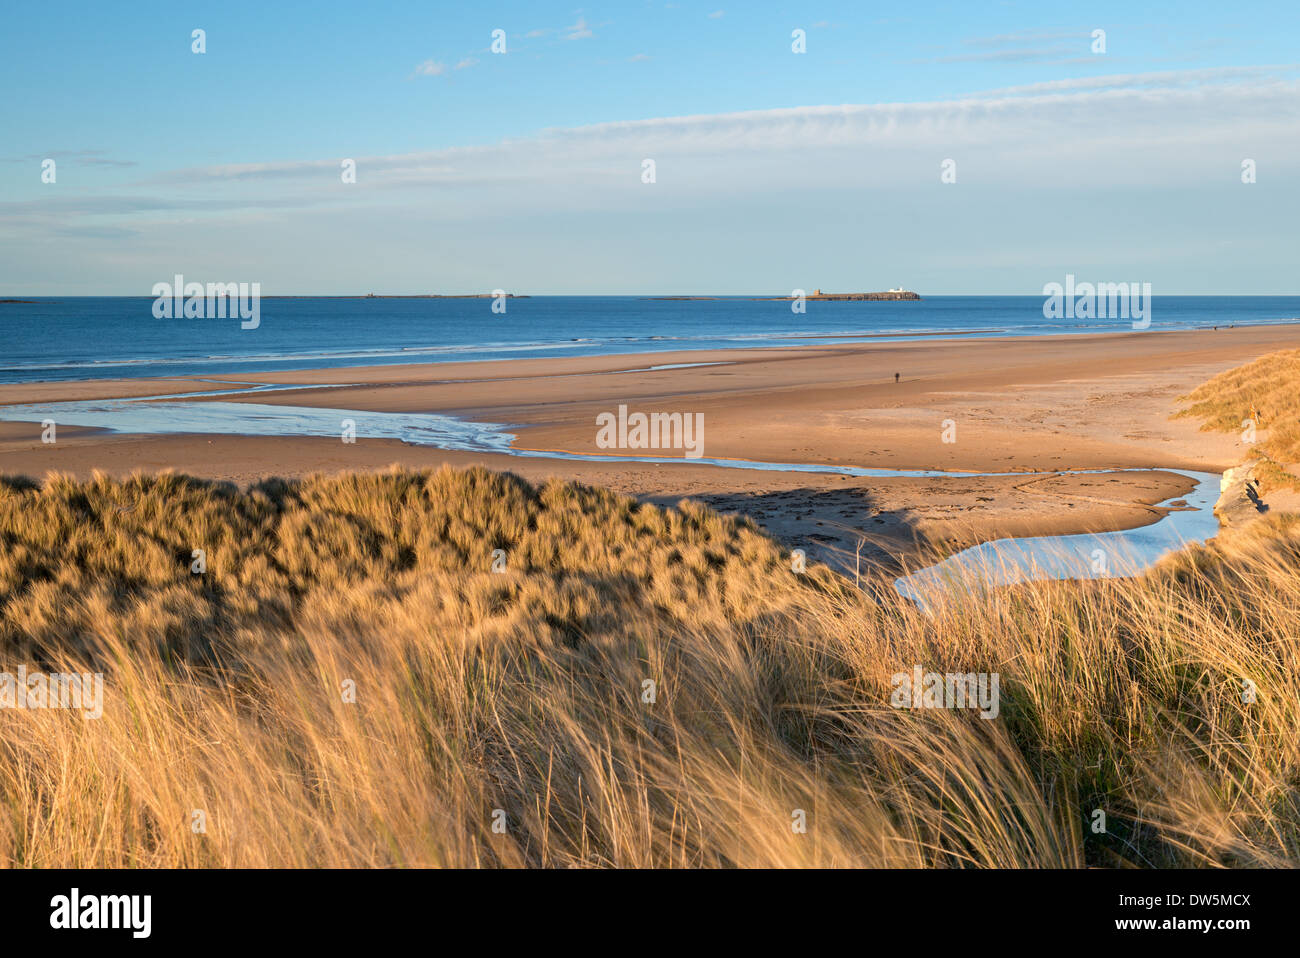 View across the beautiful Bamburgh Beach towards the Farne Islands, Northumberland, England. Spring (April) 2013. - Stock Image